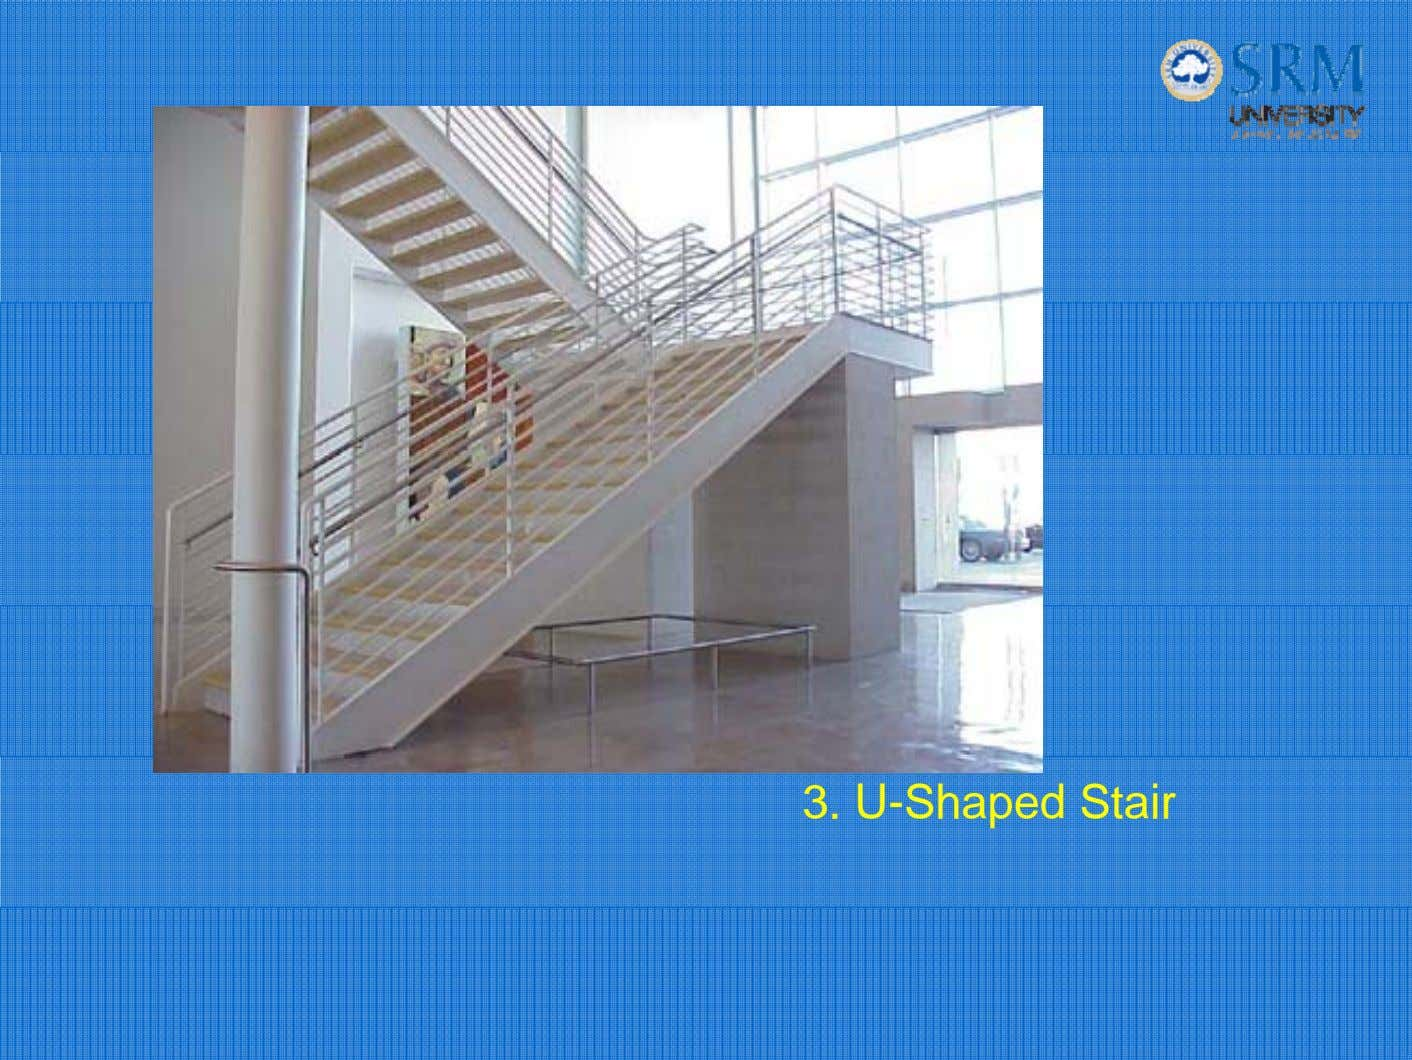 3. U-Shaped Stair